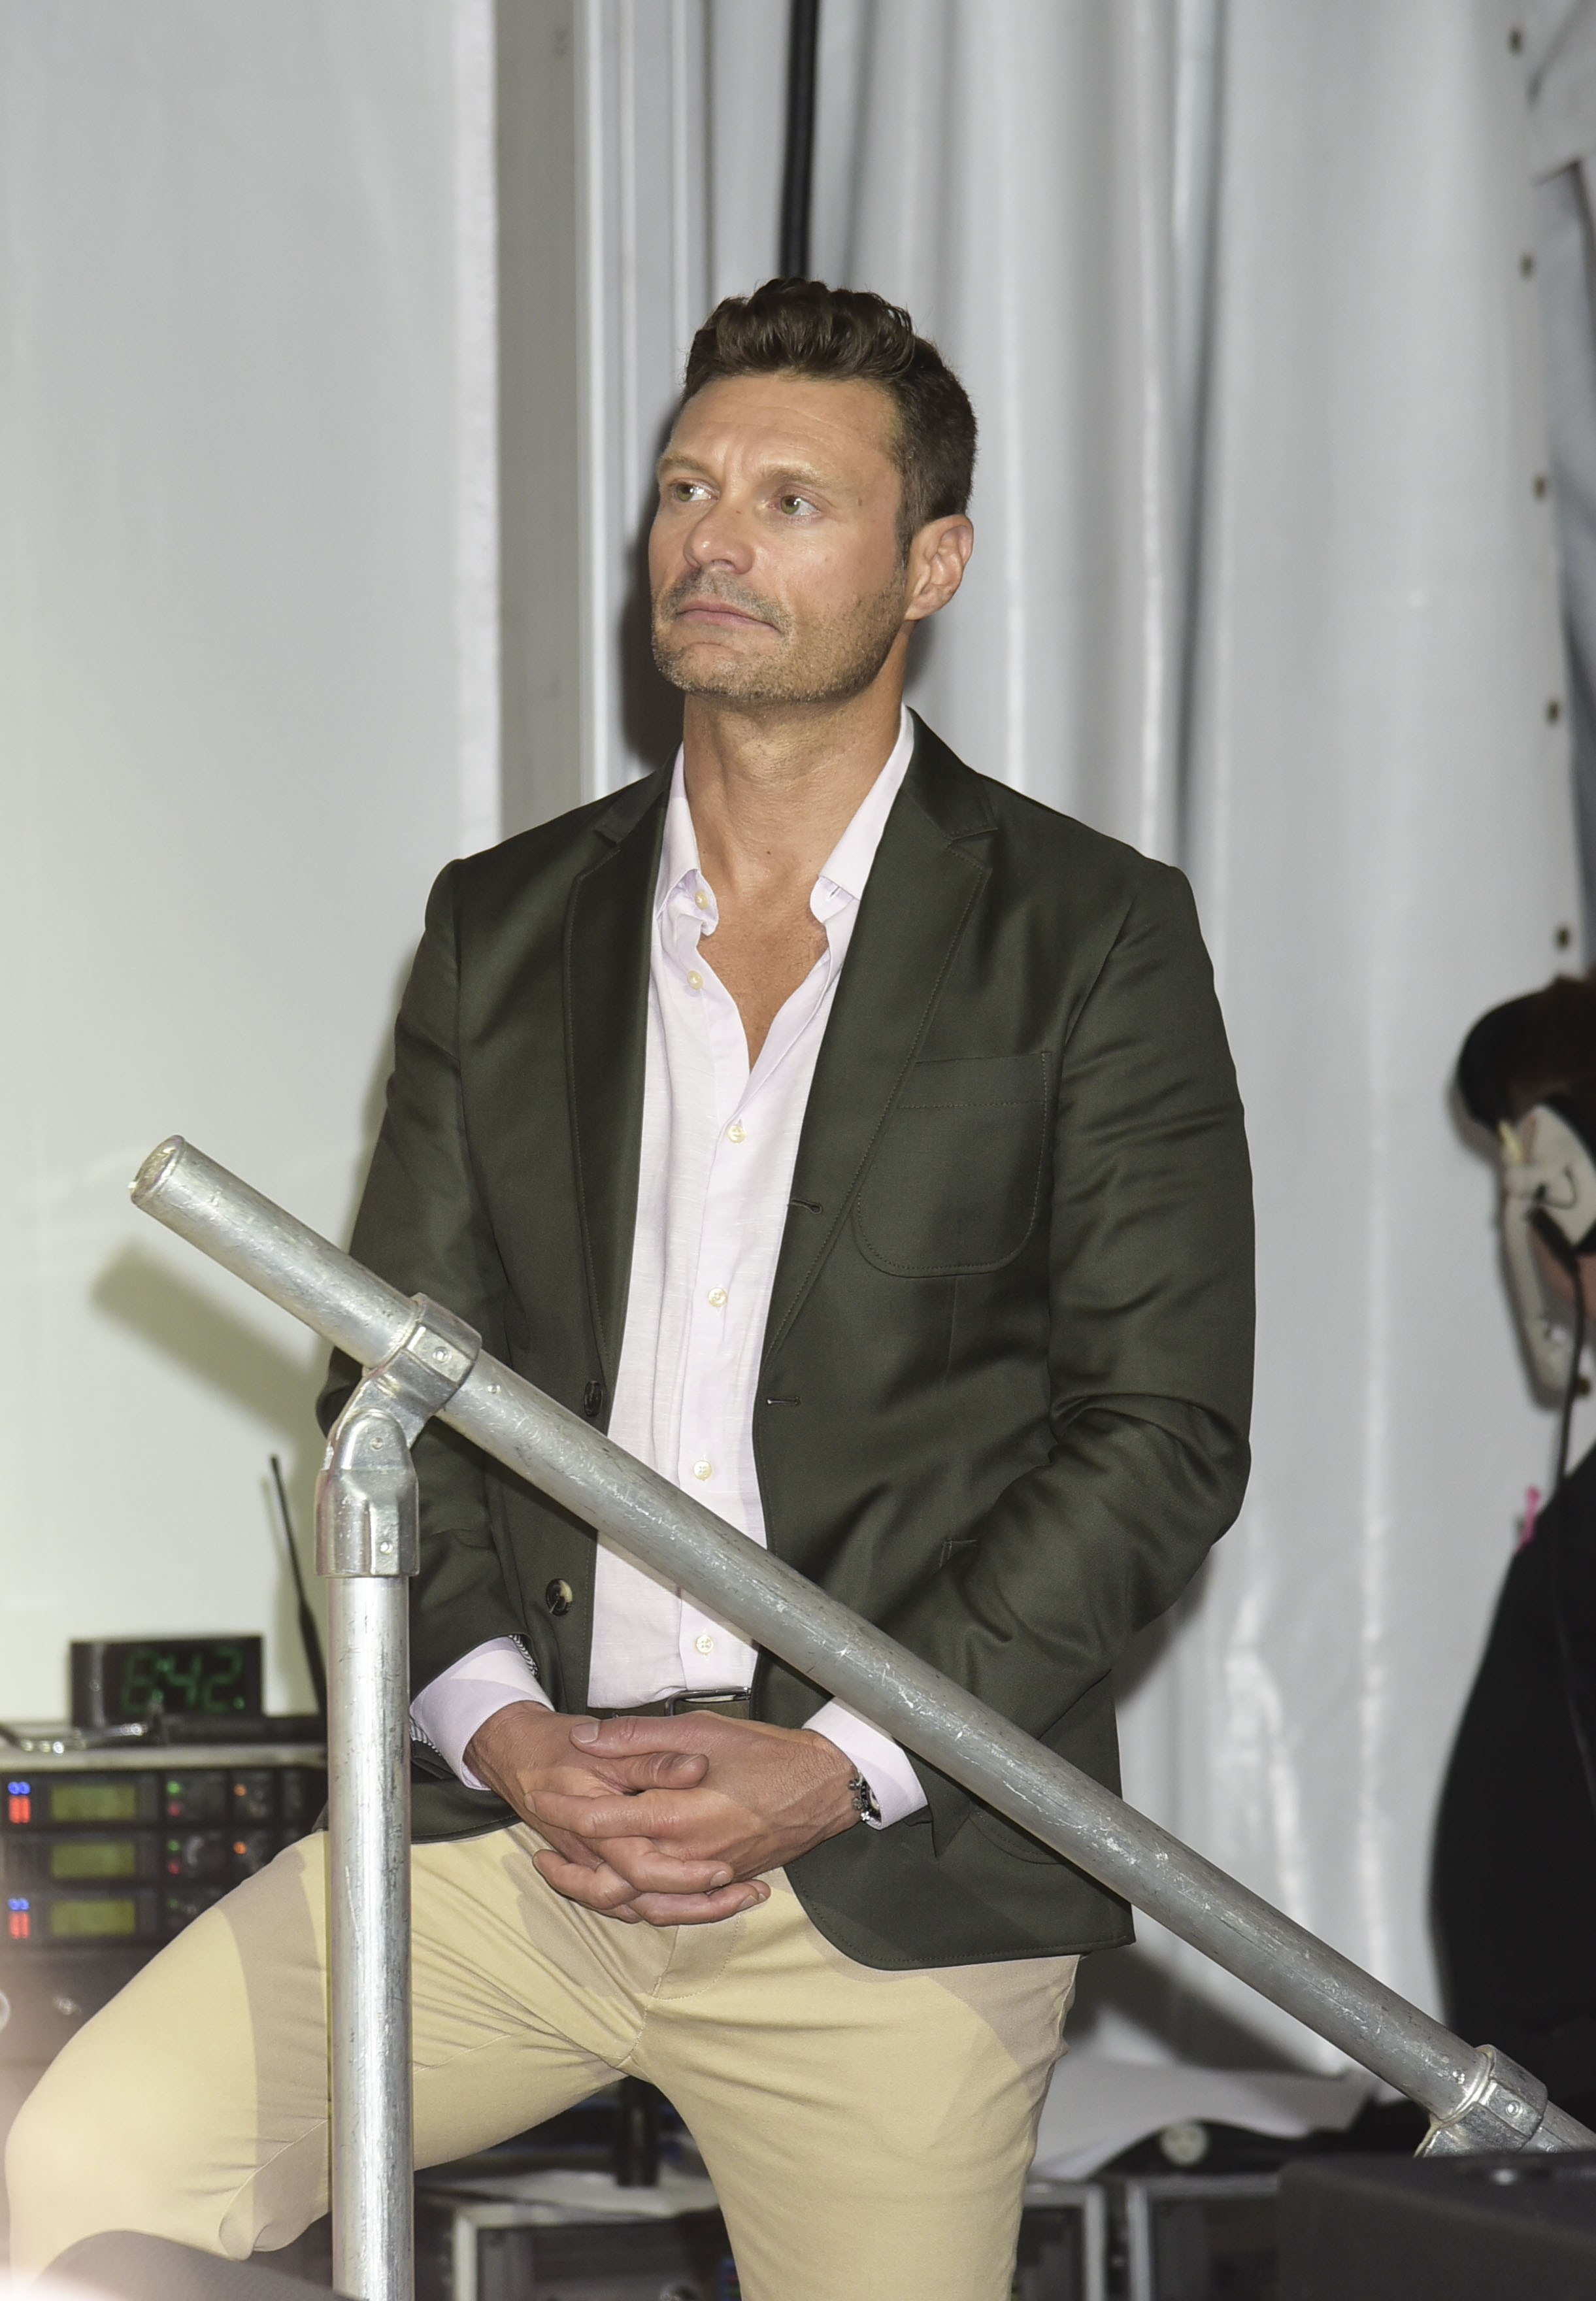 Ryan Seacrest and other celebs party at the Hamptons Paddle & Party for Pink in the Hamptons                                    Featuring: Ryan Seacrest                  Where: Bridgehampton, New York, United States                  When: 06 Aug 2017                  Credit: Rob Rich/WENN.com